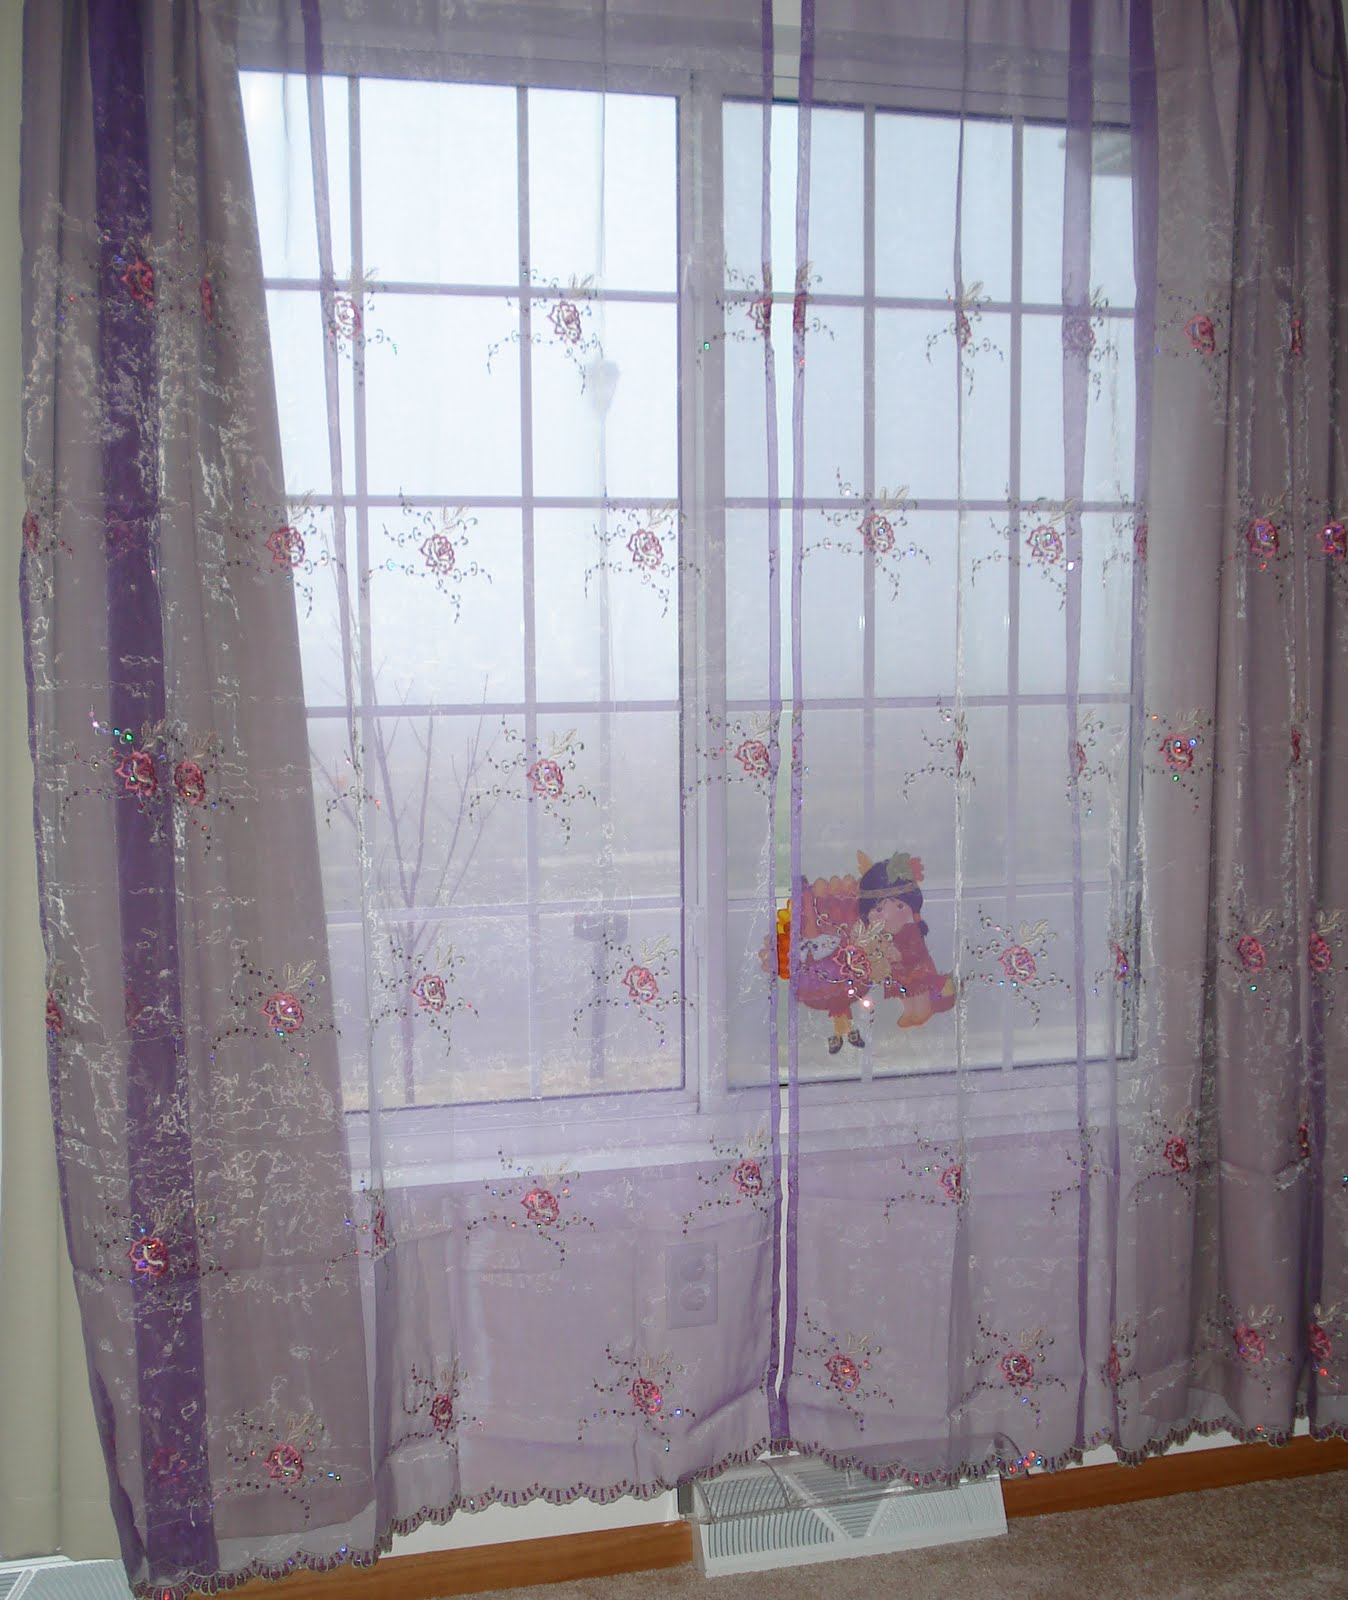 Reflections from a Mother's Soul: Curtains for a Little Girl's Room